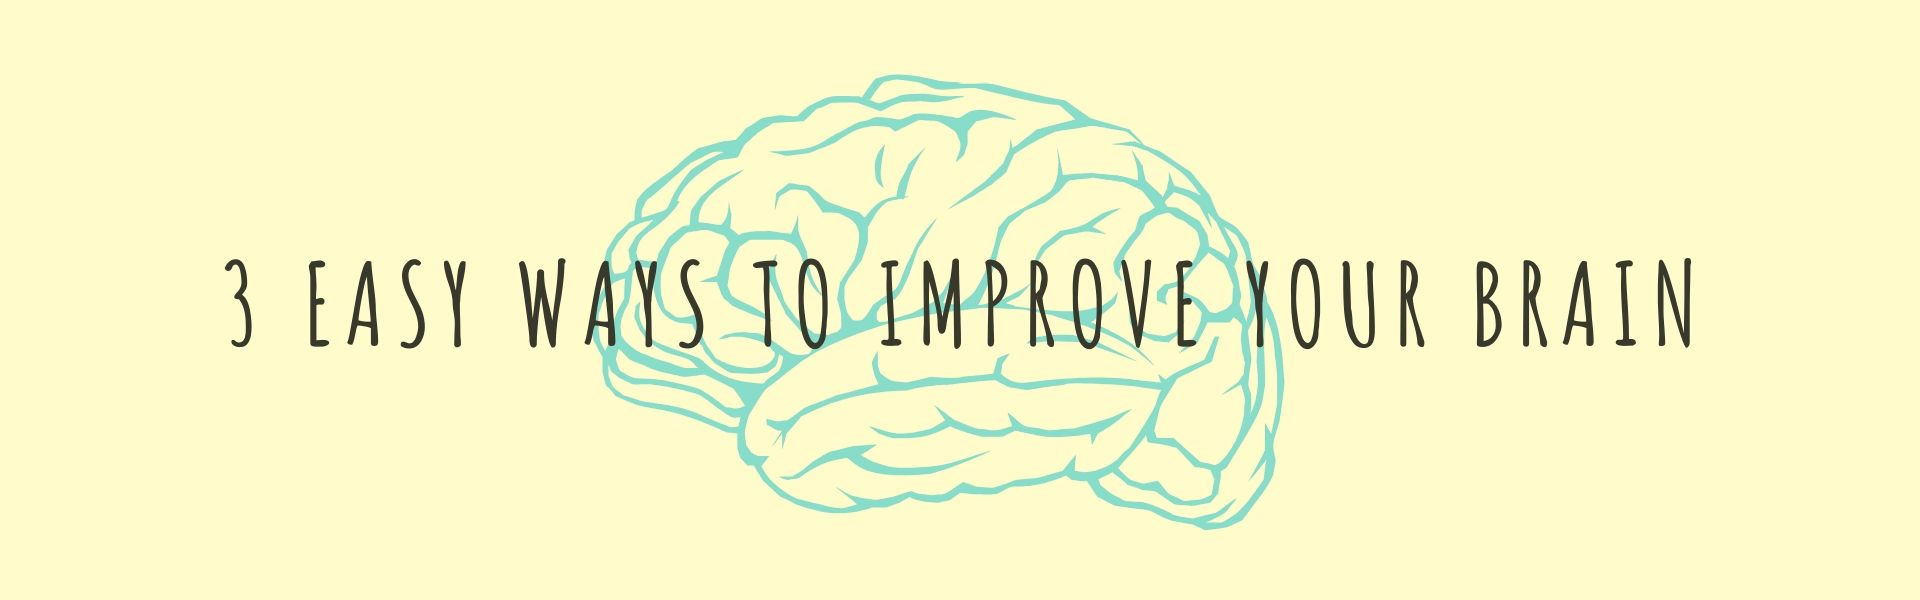 3 Easy Ways to Improve your brain